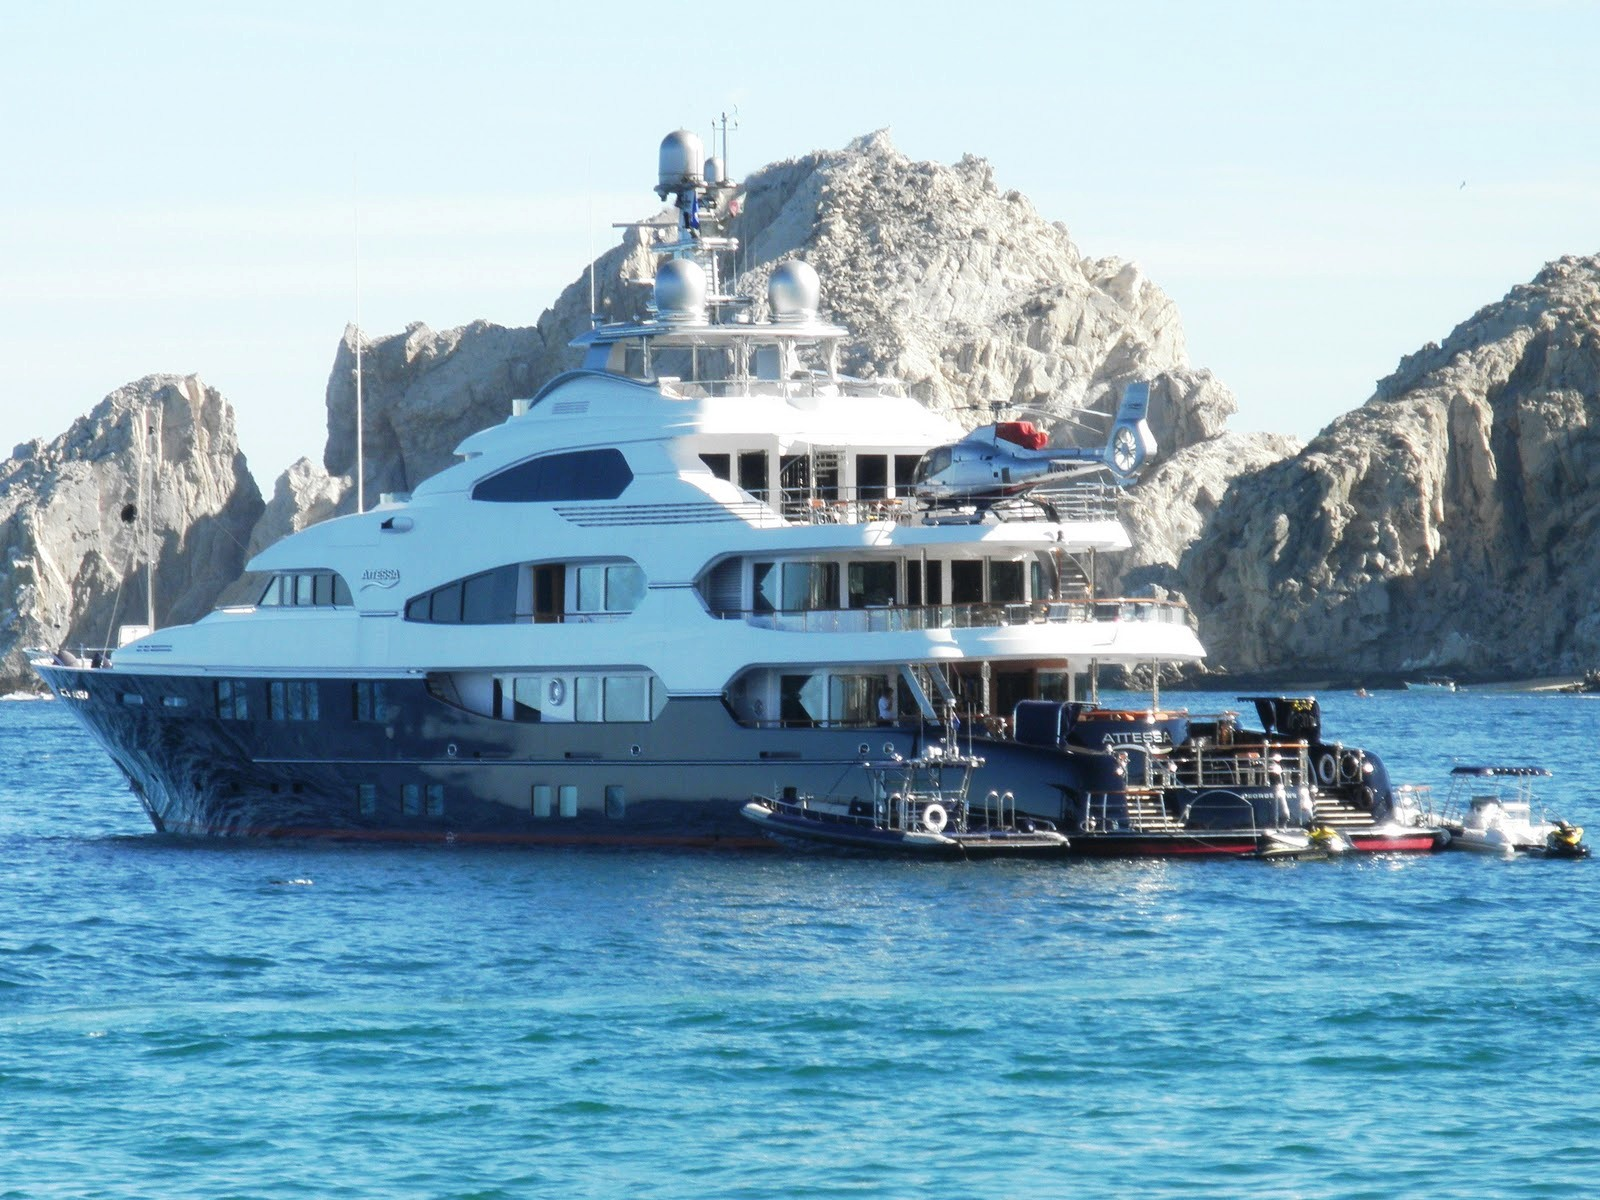 Attessa Iv Yacht Launch In Canada The Largest Ever In North